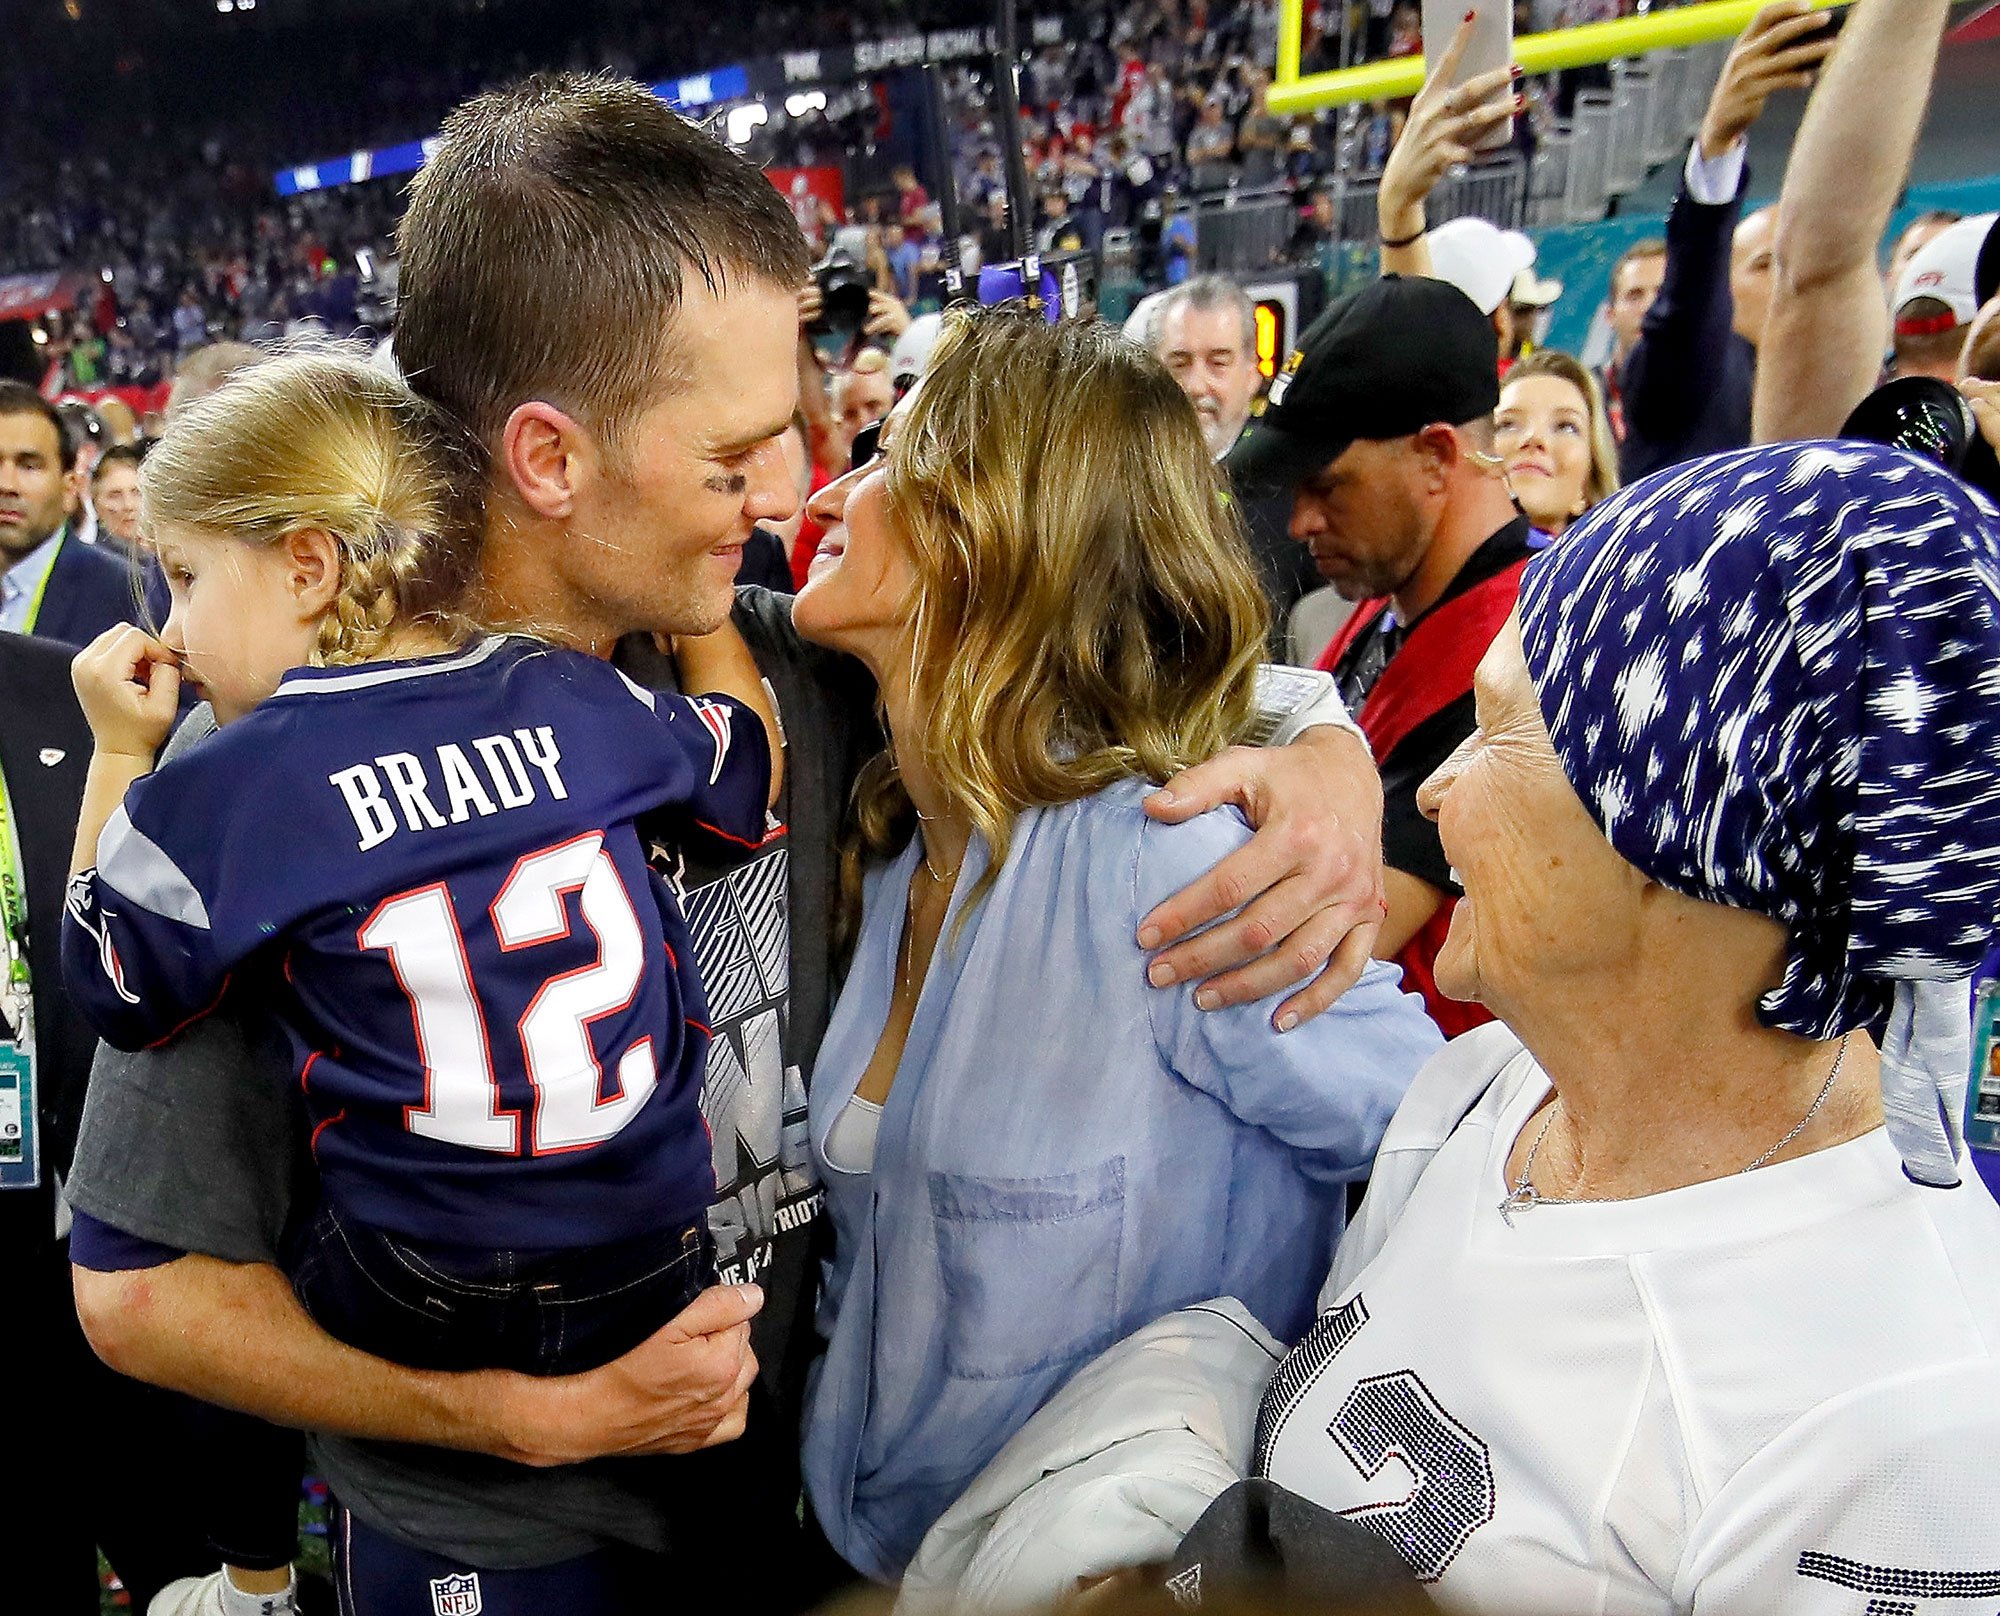 Tom Brady #12 of the New England Patriots celebrates with wife Gisele Bundchen and daughter Vivian Brady after defeating the Atlanta Falcons during Super Bowl 51 at NRG Stadium on February 5, 2017 in Houston, Texas.